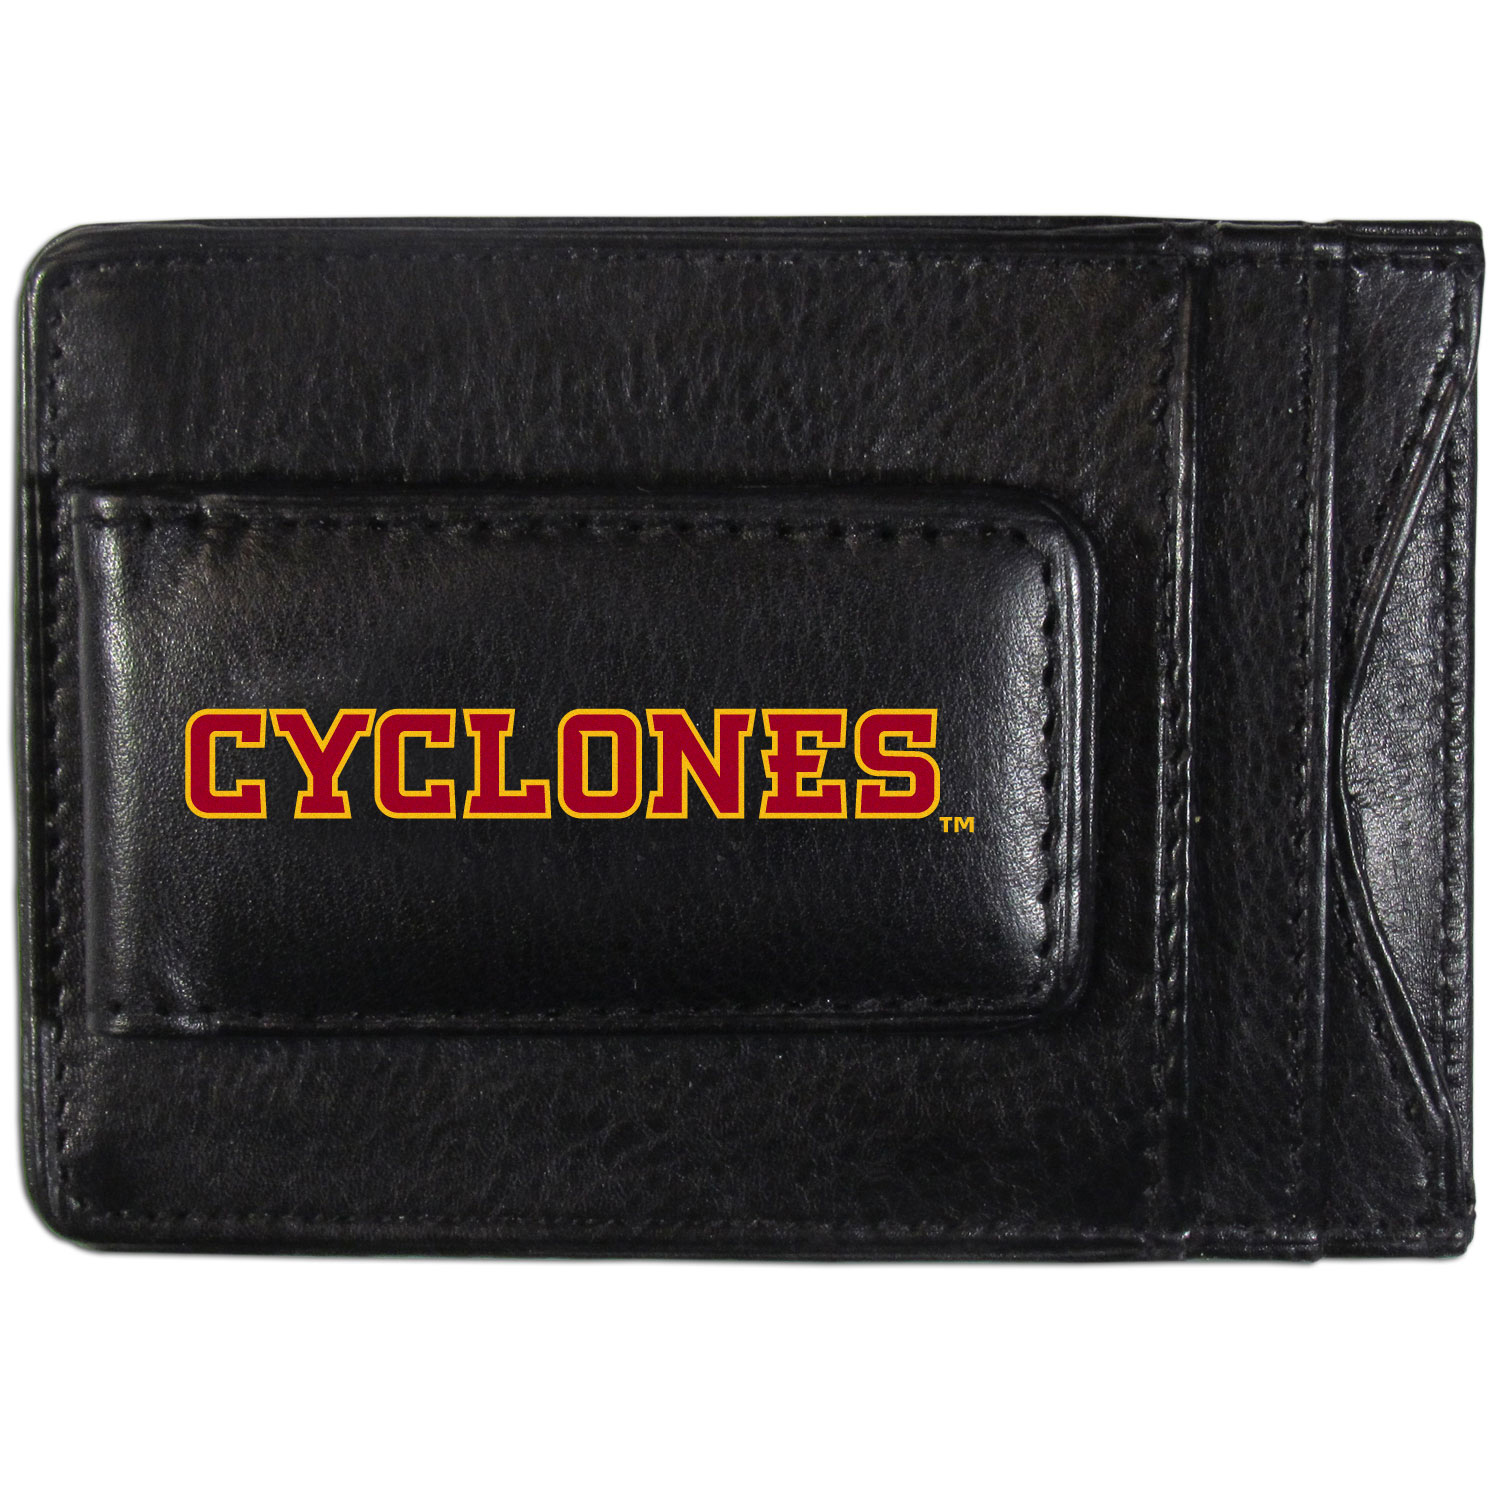 Iowa St. Cyclones Logo Leather Cash and Cardholder - This super slim leather wallet lets you have all the benefits of a money clip while keeping the organization of a wallet. On one side of this front pocket wallet there is a strong, magnetic money clip to keep your cash easily accessible and the?Iowa St. Cyclones team logo on the front. The versatile men's accessory is a perfect addition to your fan apparel.